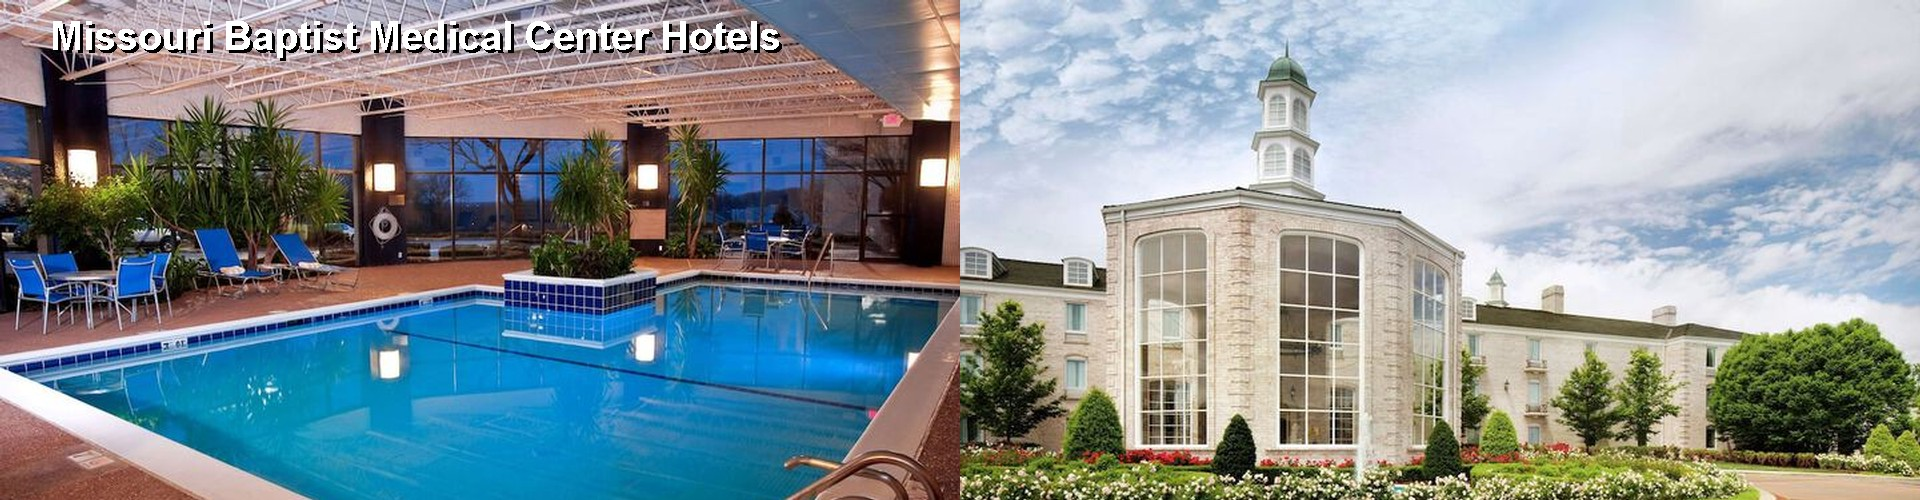 5 Best Hotels near Missouri Baptist Medical Center